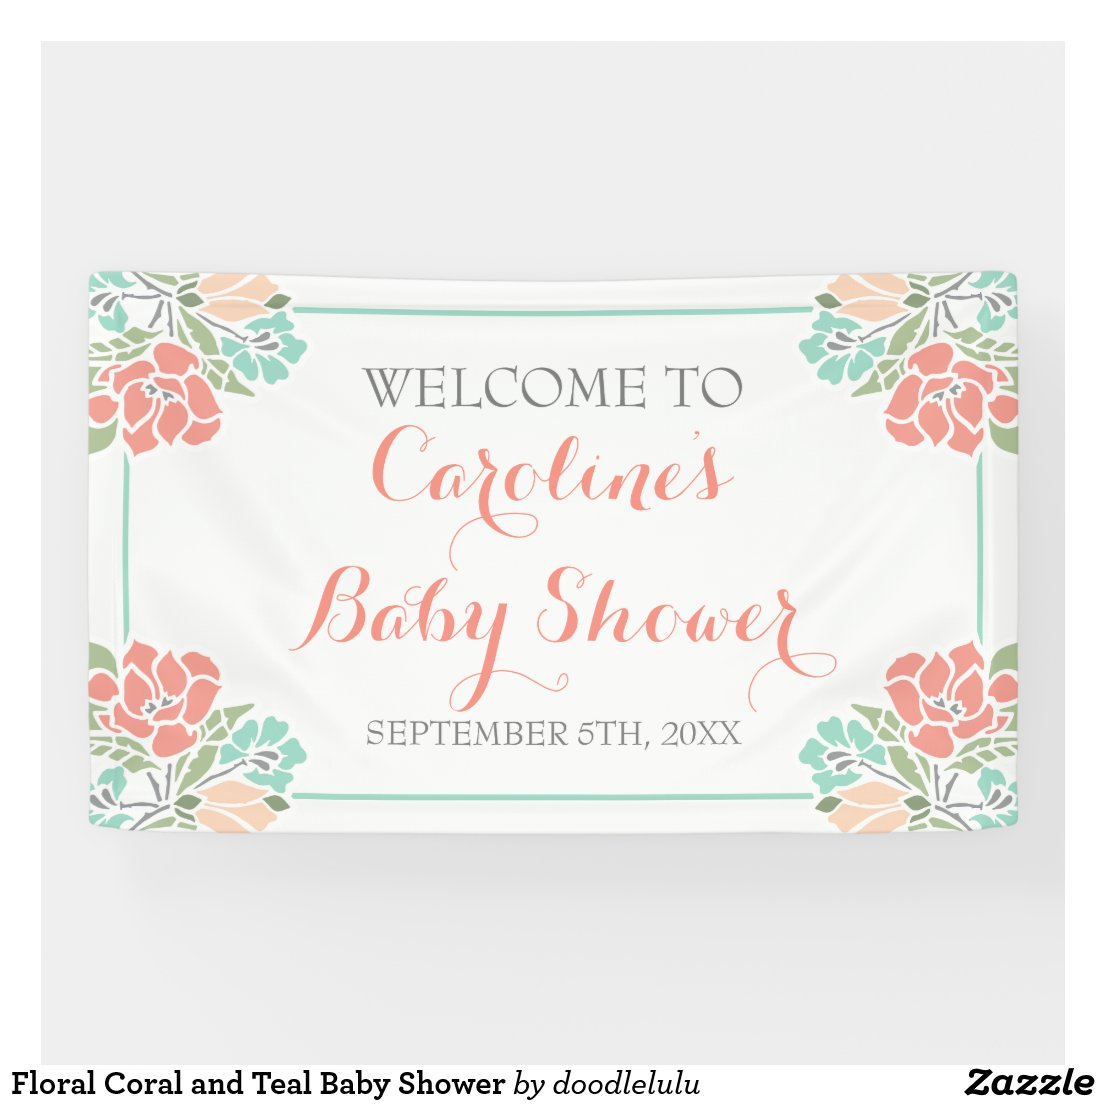 Floral Coral and Teal Baby Shower Banner